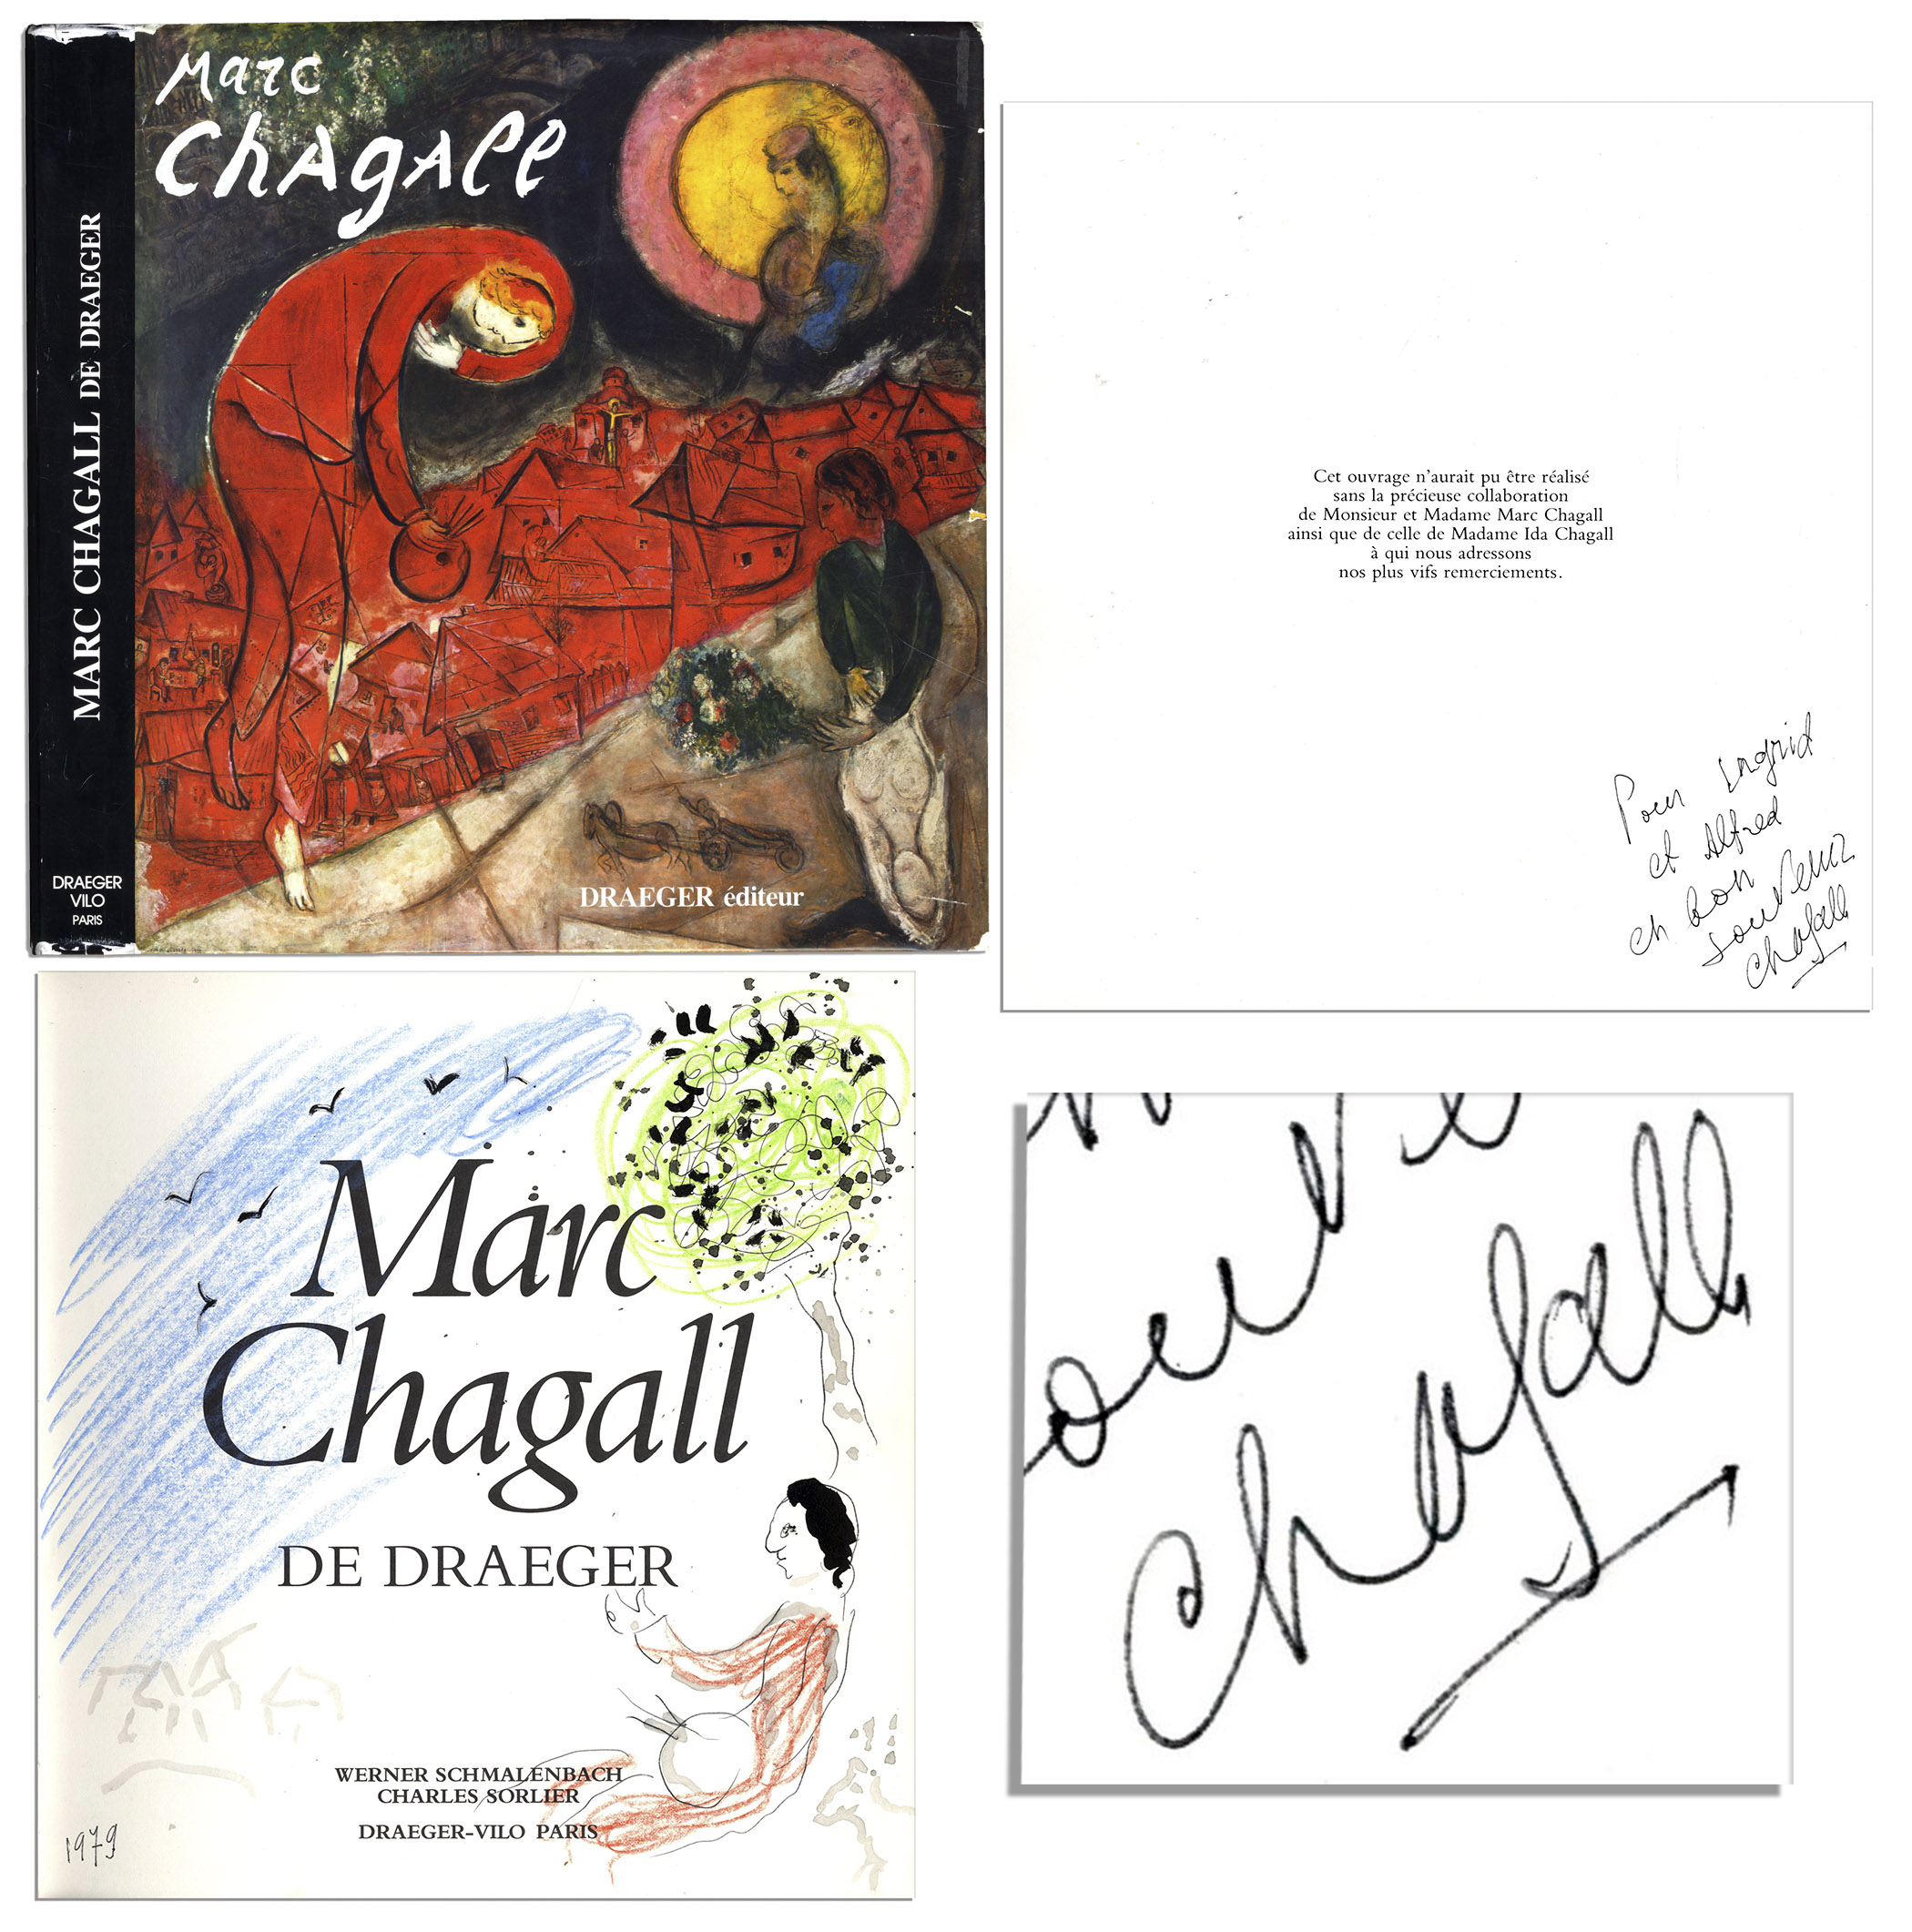 "Marc Chagall Signed Book Beautiful, Original Artwork by Marc Chagall in His Book, ""Peintre Sous un Arbre"" Signed"